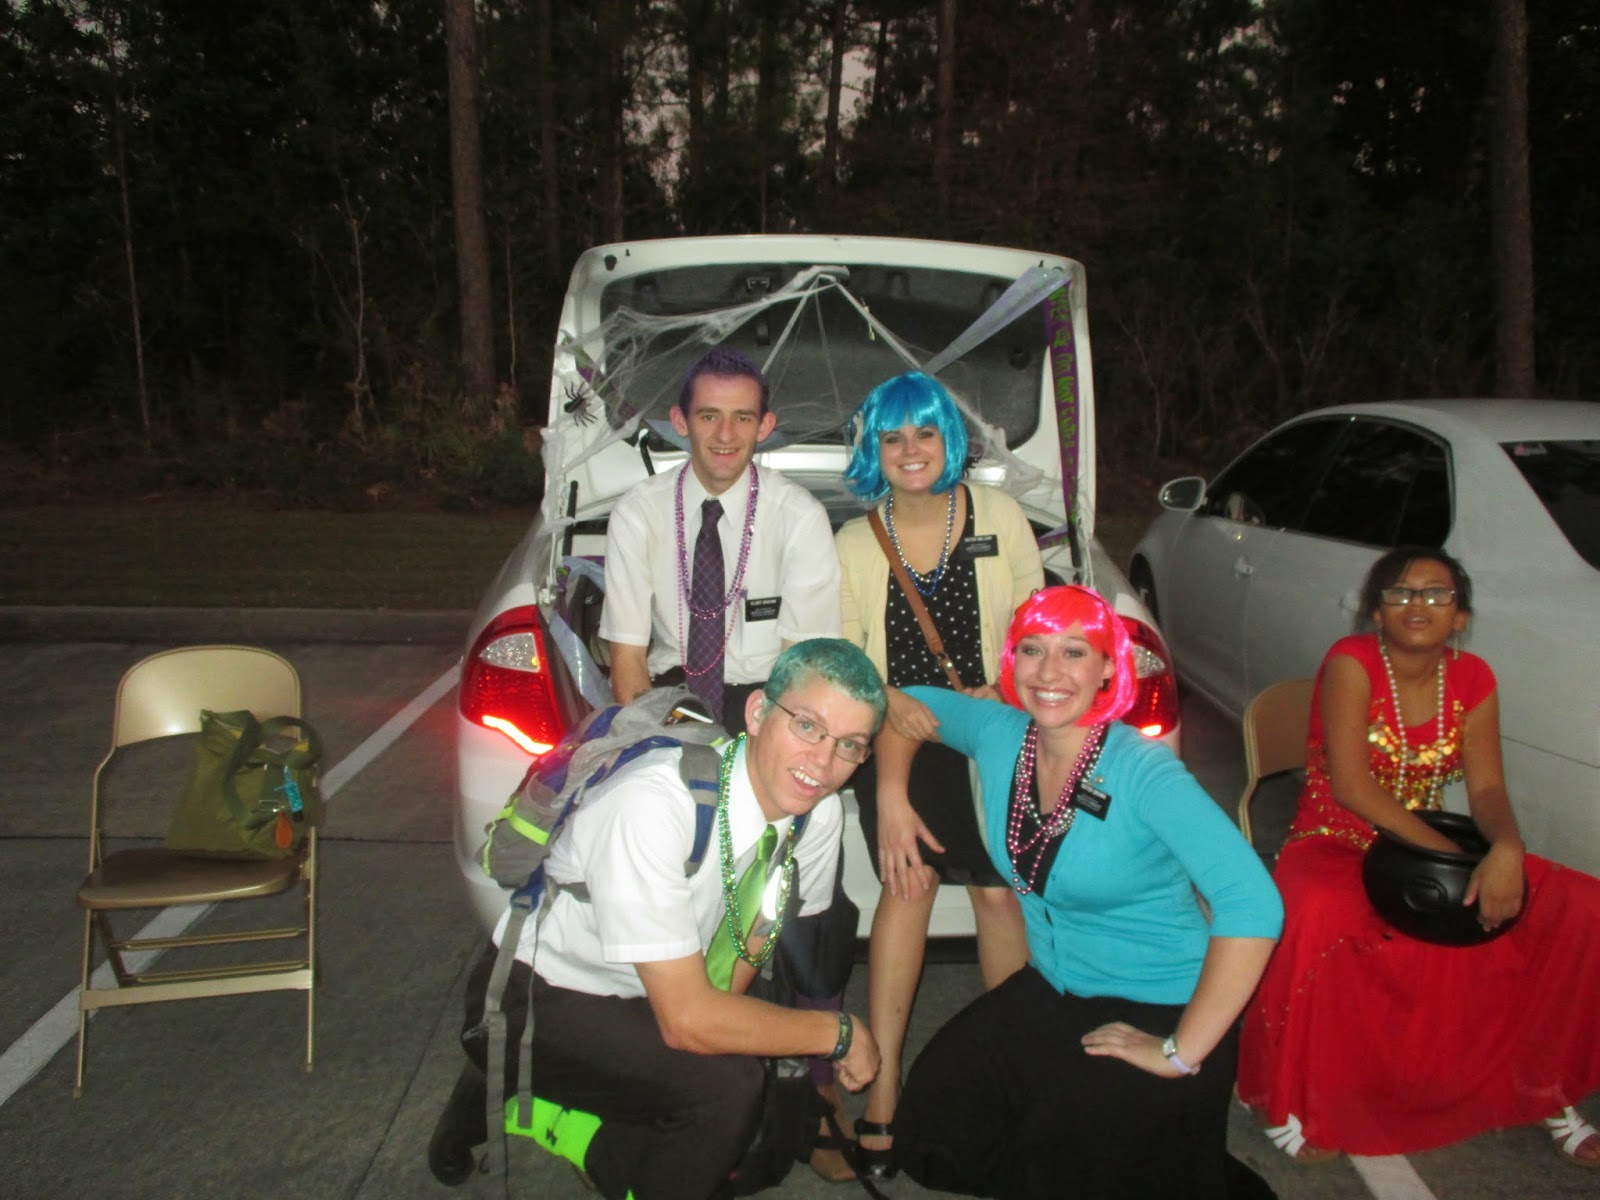 """For Halloween, our ward did a trunk or treat and all us missionaries made our hair a crazy color! It was pretty exciting."" -via marissainmississippi.blogspot.com"